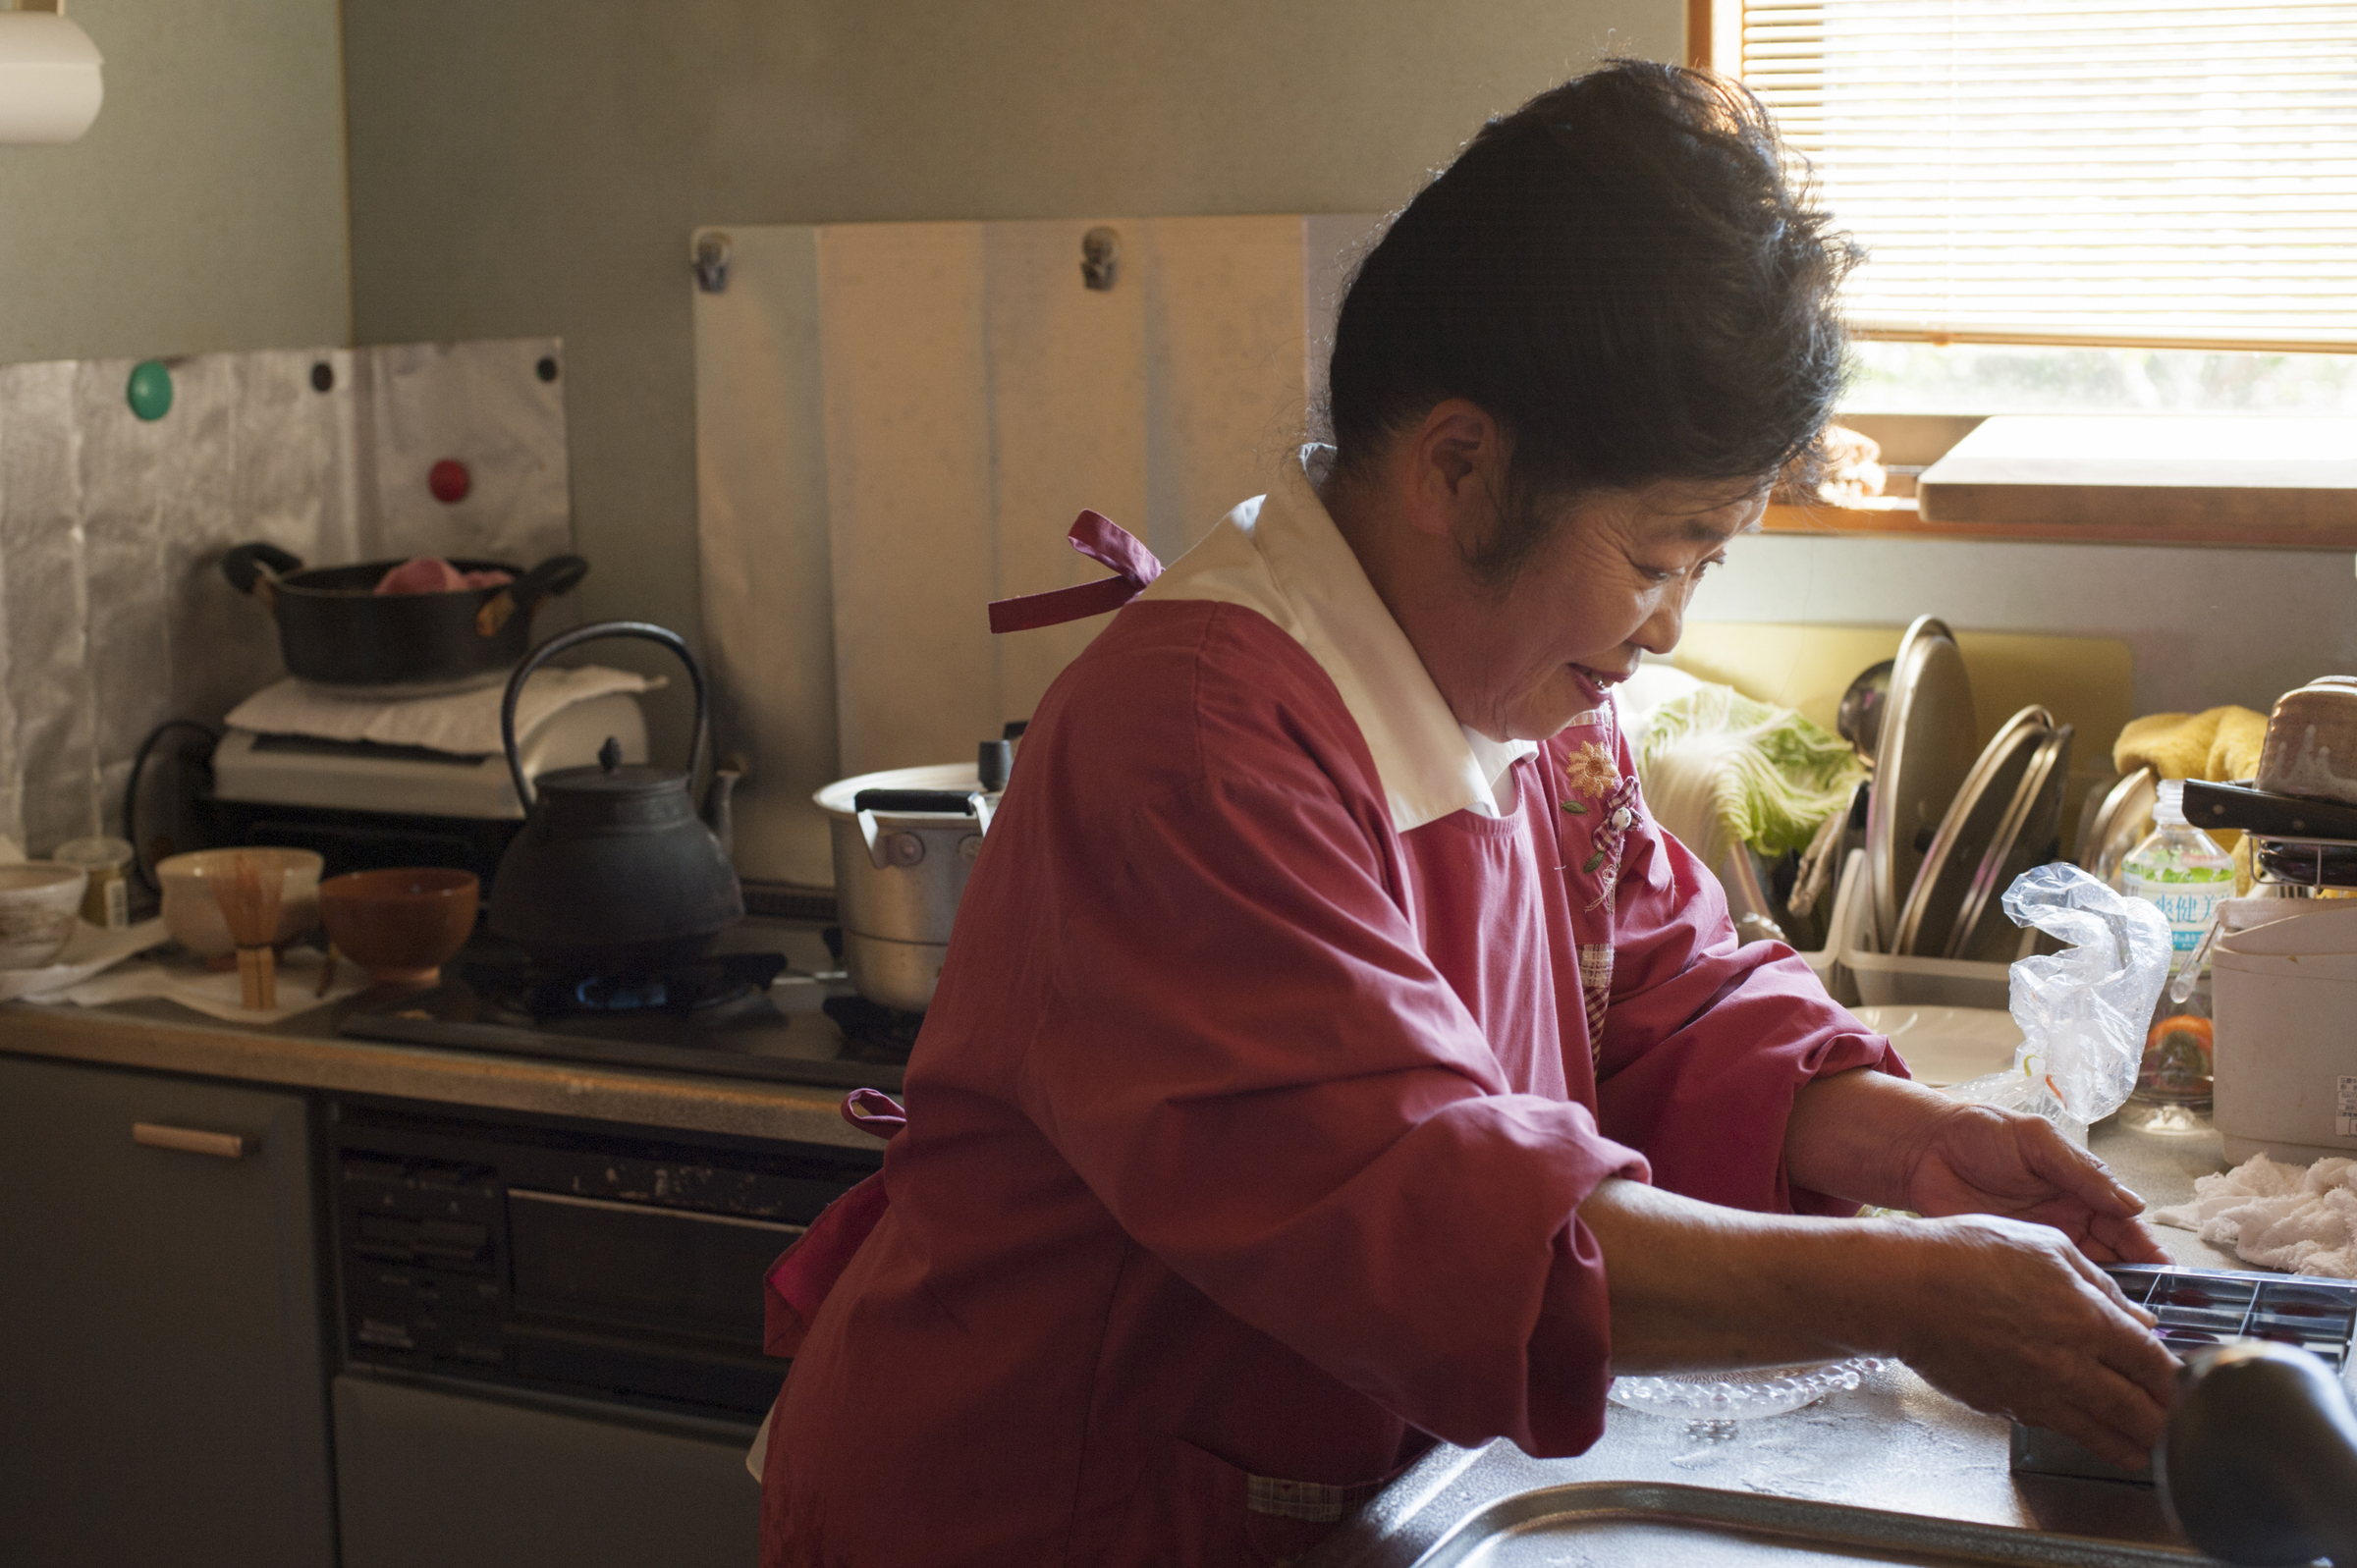 Toshiko Nakamura washes dishes in her kitchen in Keishi, Ooka village, Nagano Prefecture.